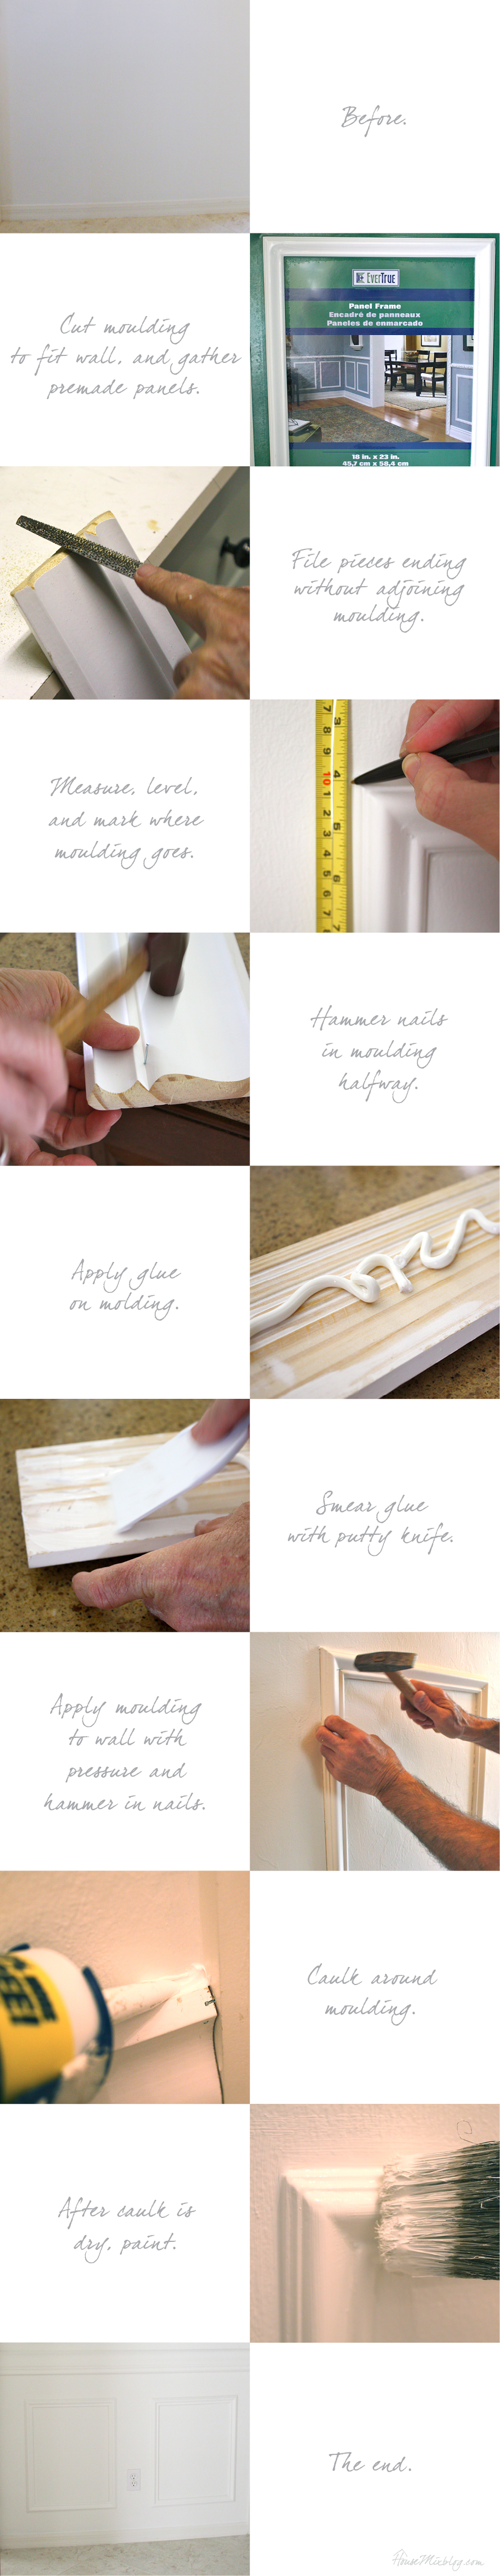 DIY step by step chair rail moulding instructions